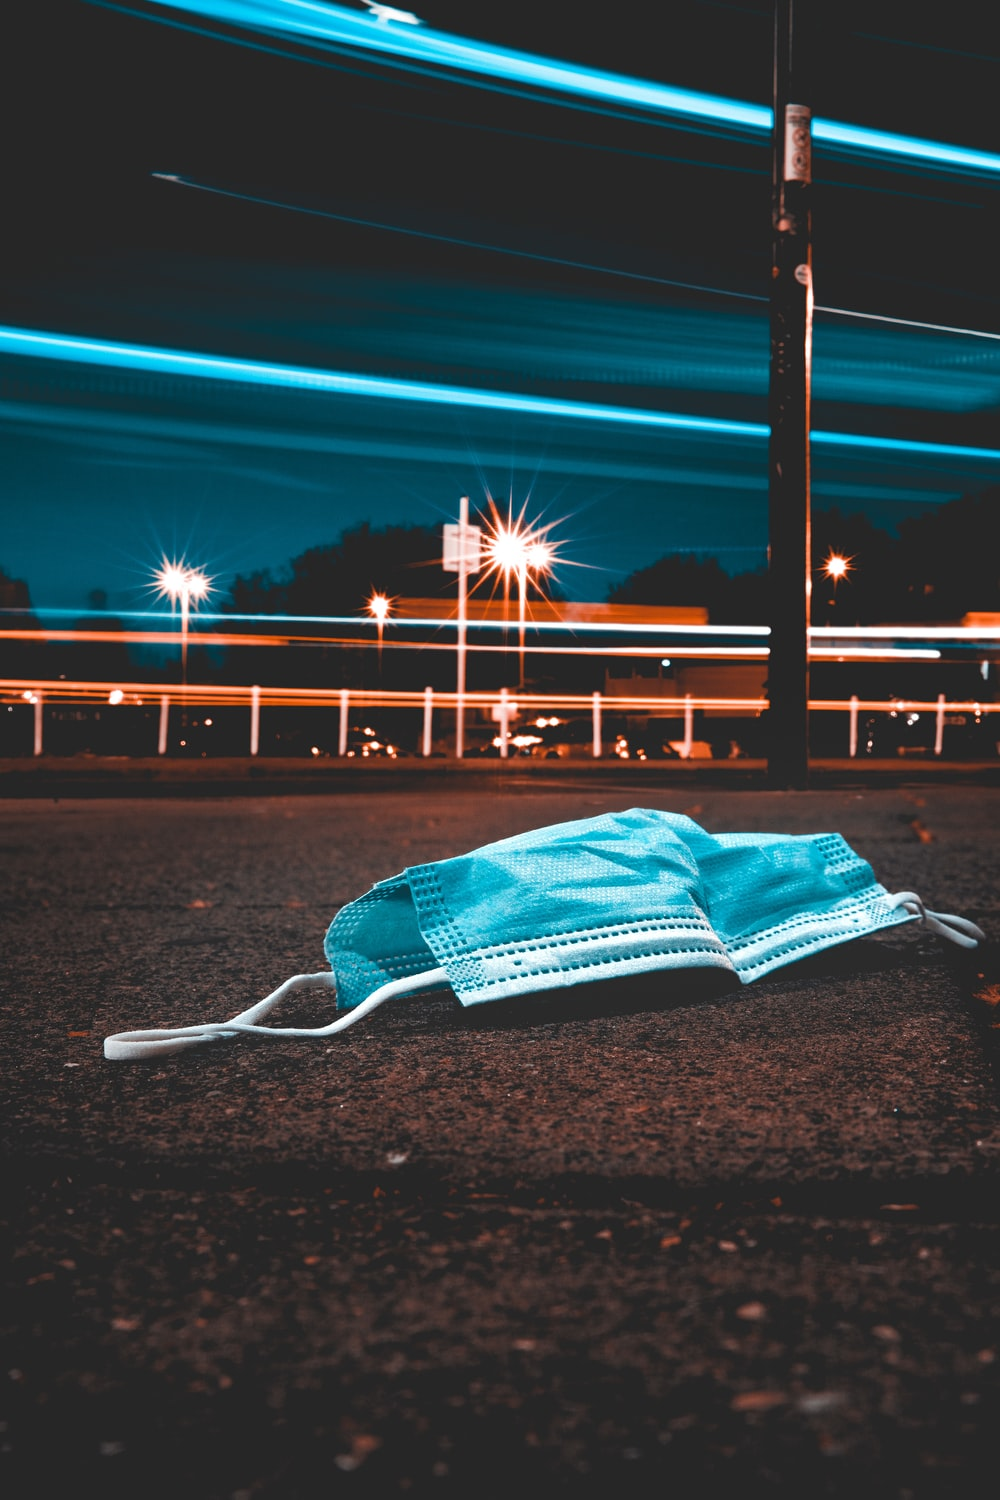 blue umbrella on gray sand during night time